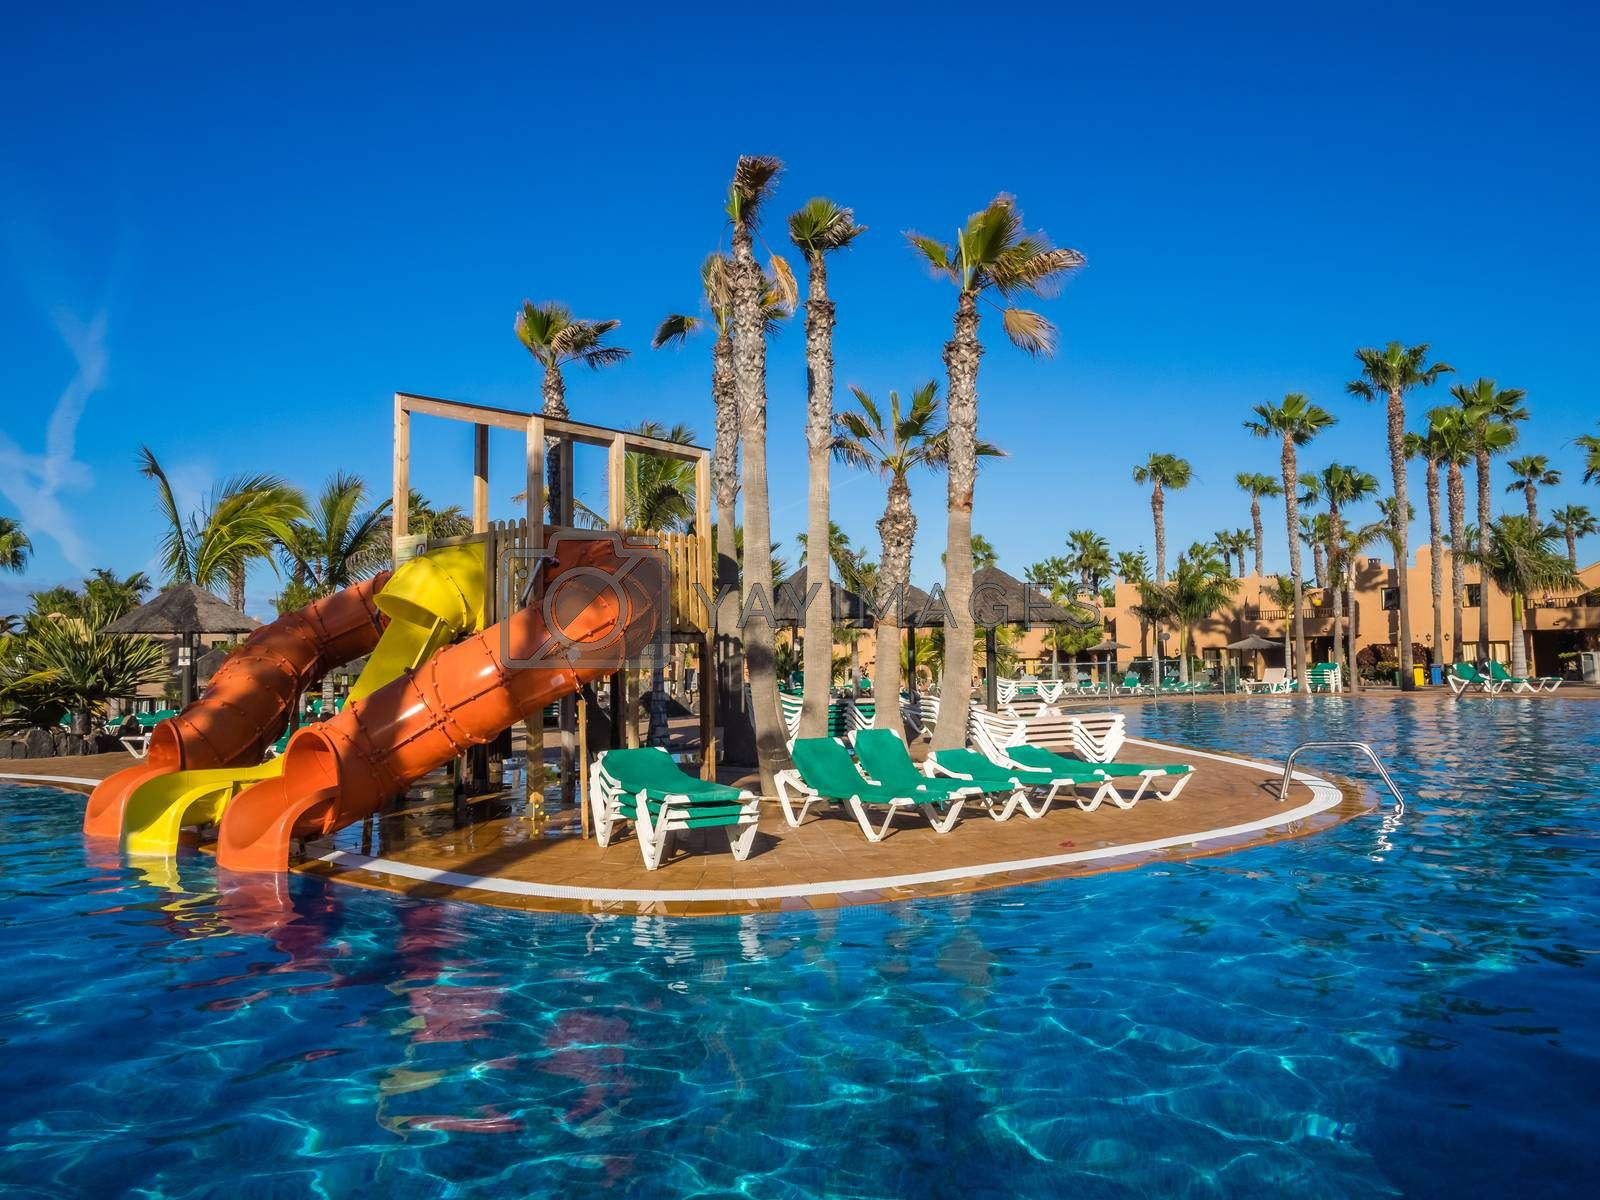 Slides for children at a large swimming pool in a resort in Canary Islands. Picture taken 11th April 2016 in Corralejo, Fuerteventura, Spain